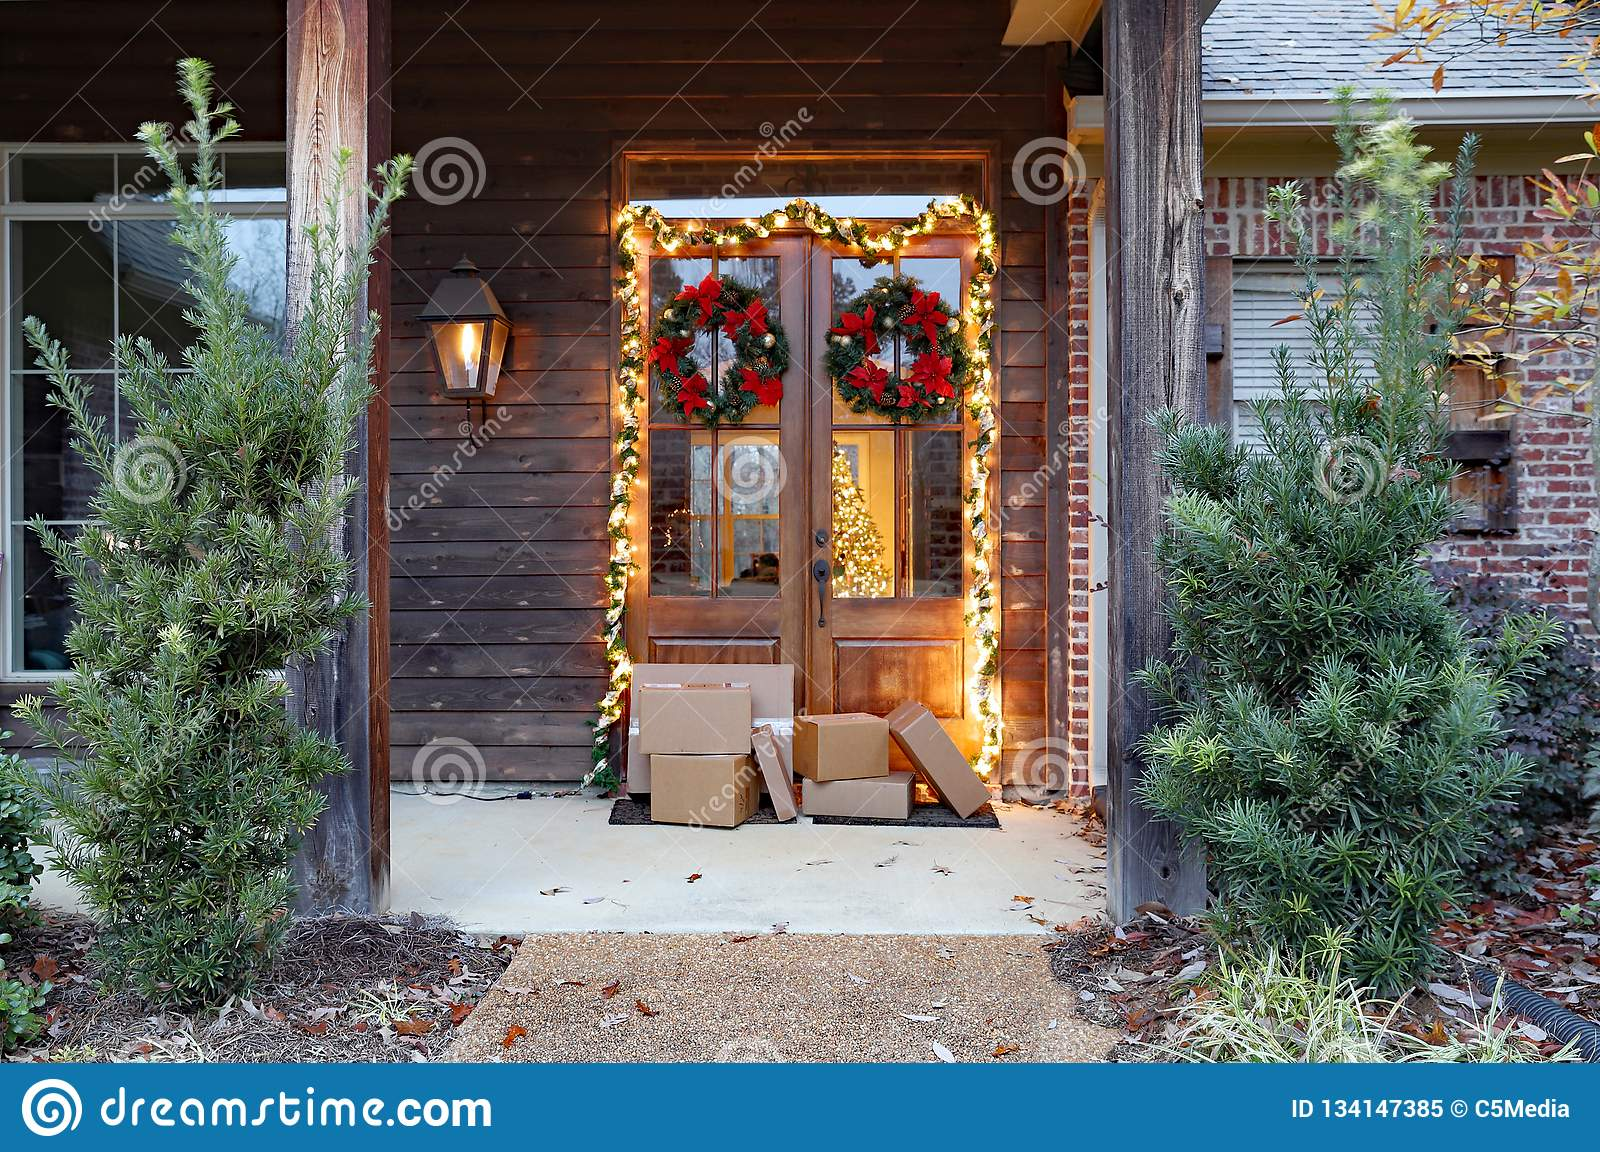 Shipping packages on porch during holiday season